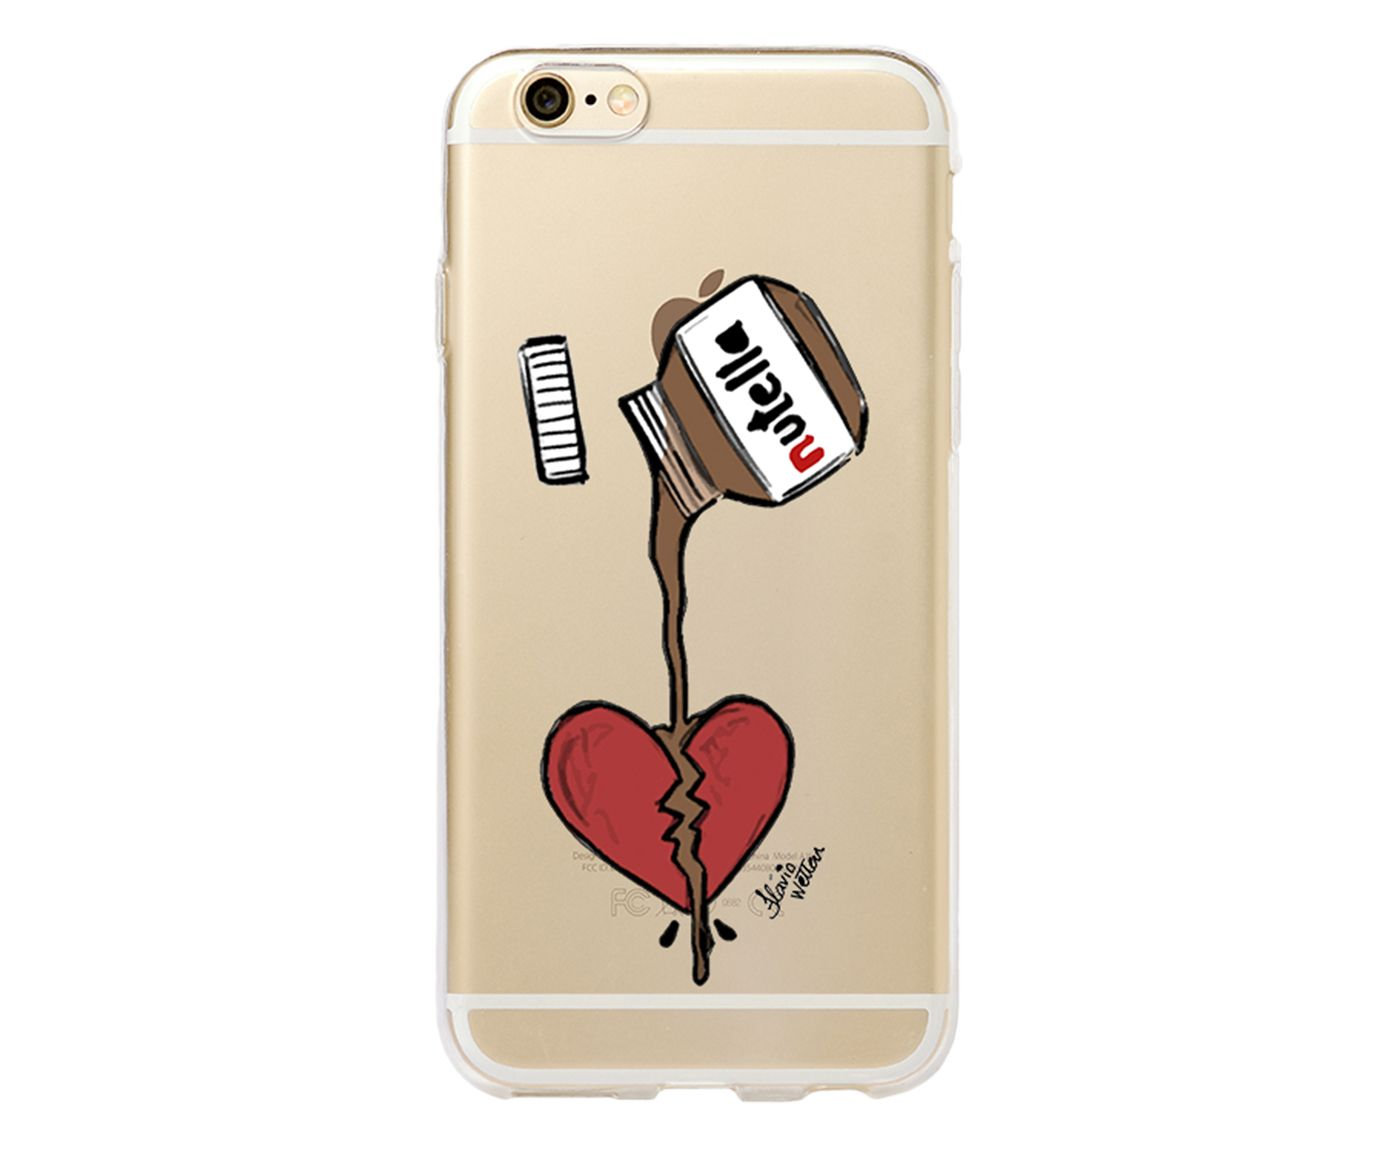 Case Nutella - Para iPhone 6 Plus | Westwing.com.br